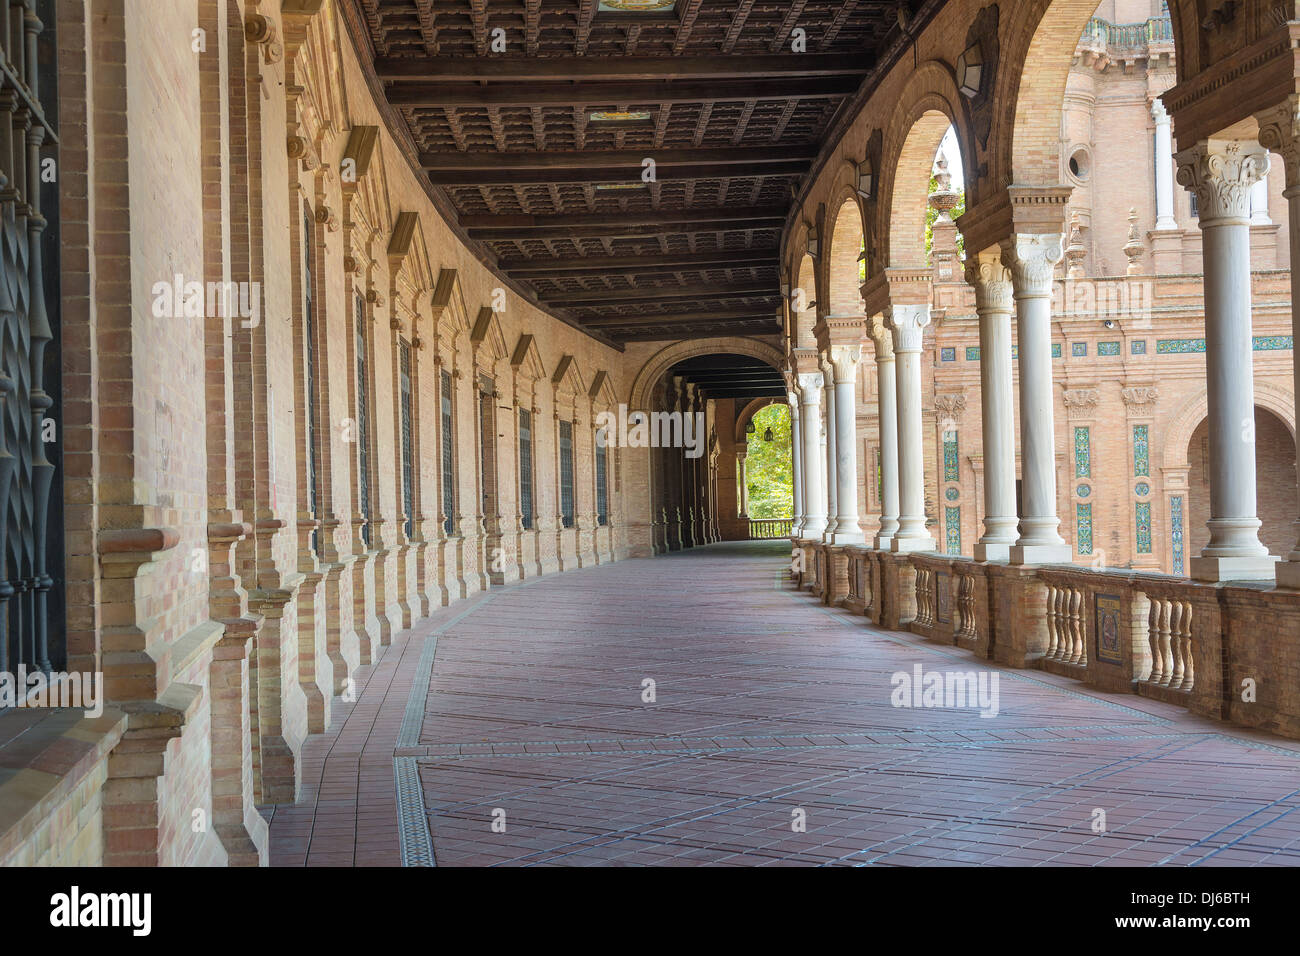 Plaza de Espana in the center of Seville, Spain a major tourist attraction showing the cloister. - Stock Image